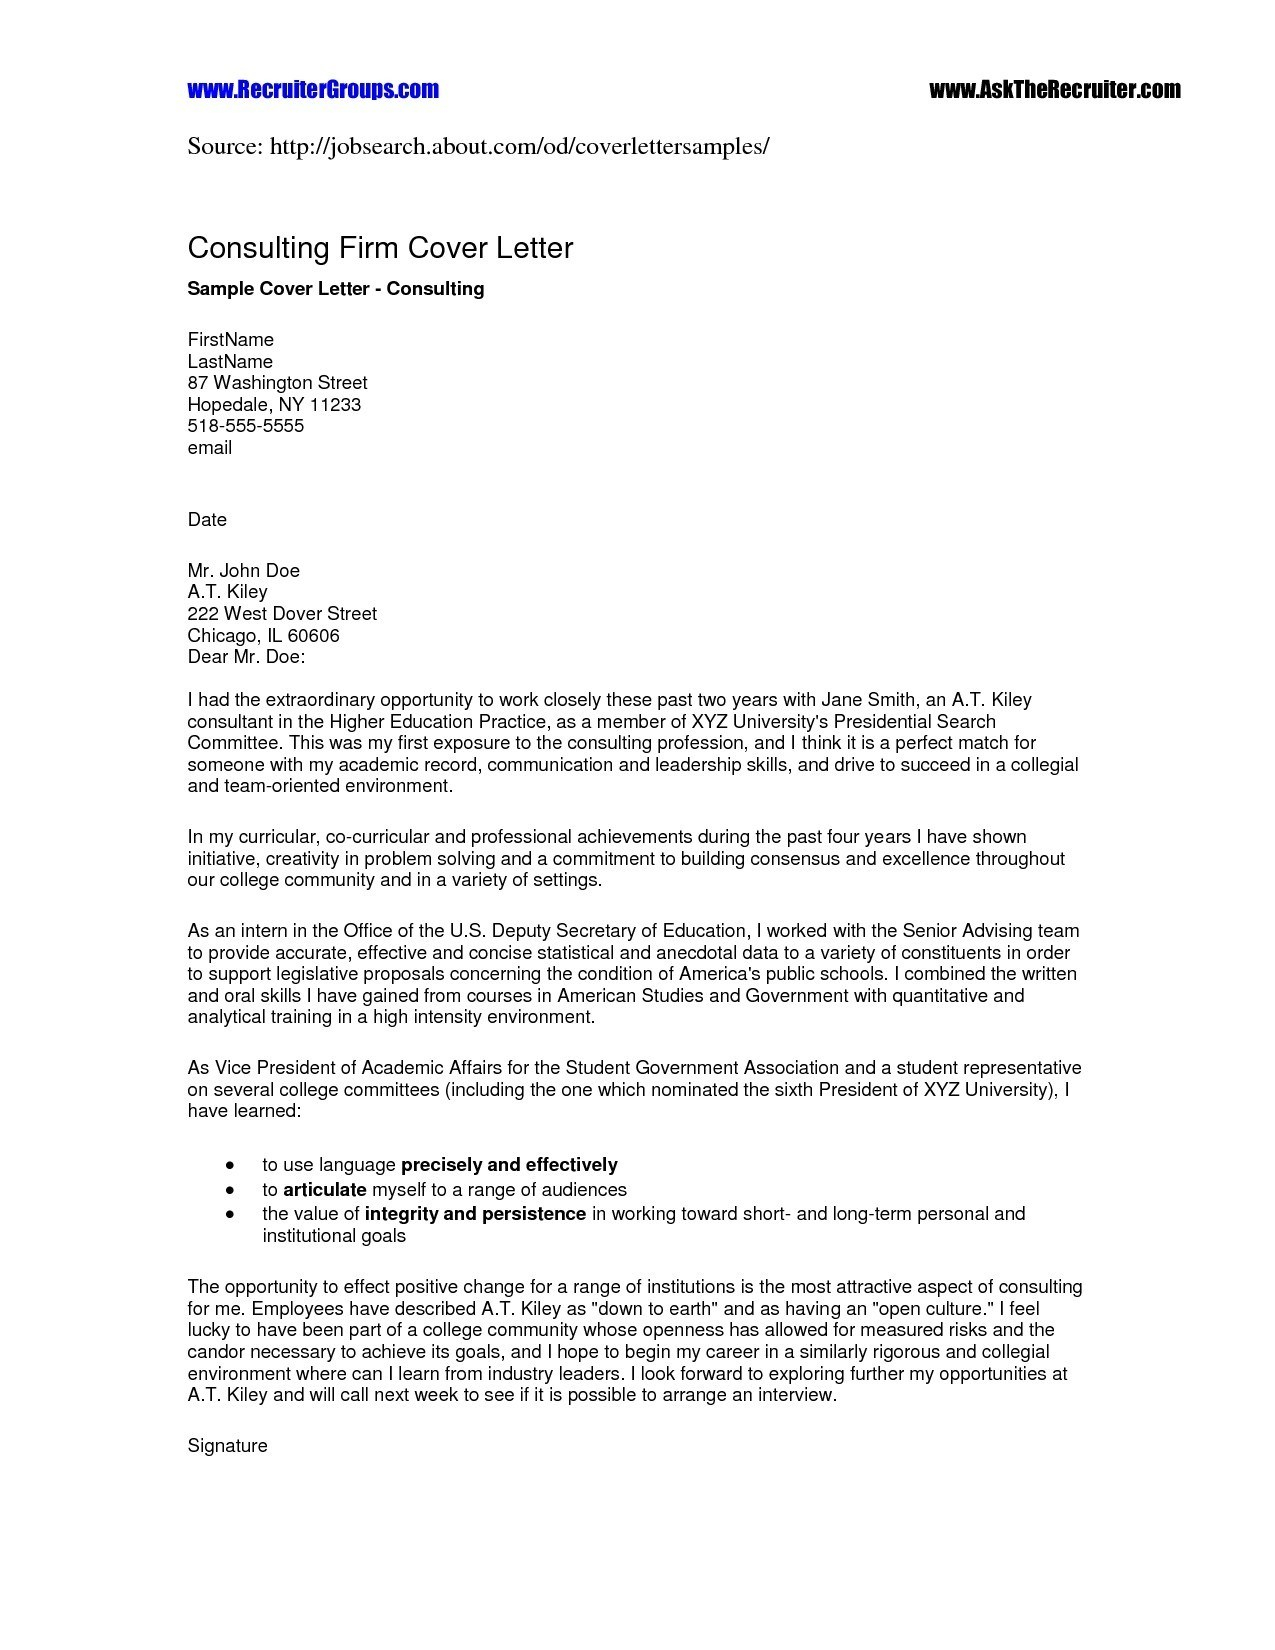 debt dispute letter template example-Debt Collection Dispute Letter Unique Debt Collector Cover Letter Gallery Cover Letter Sample 6-r